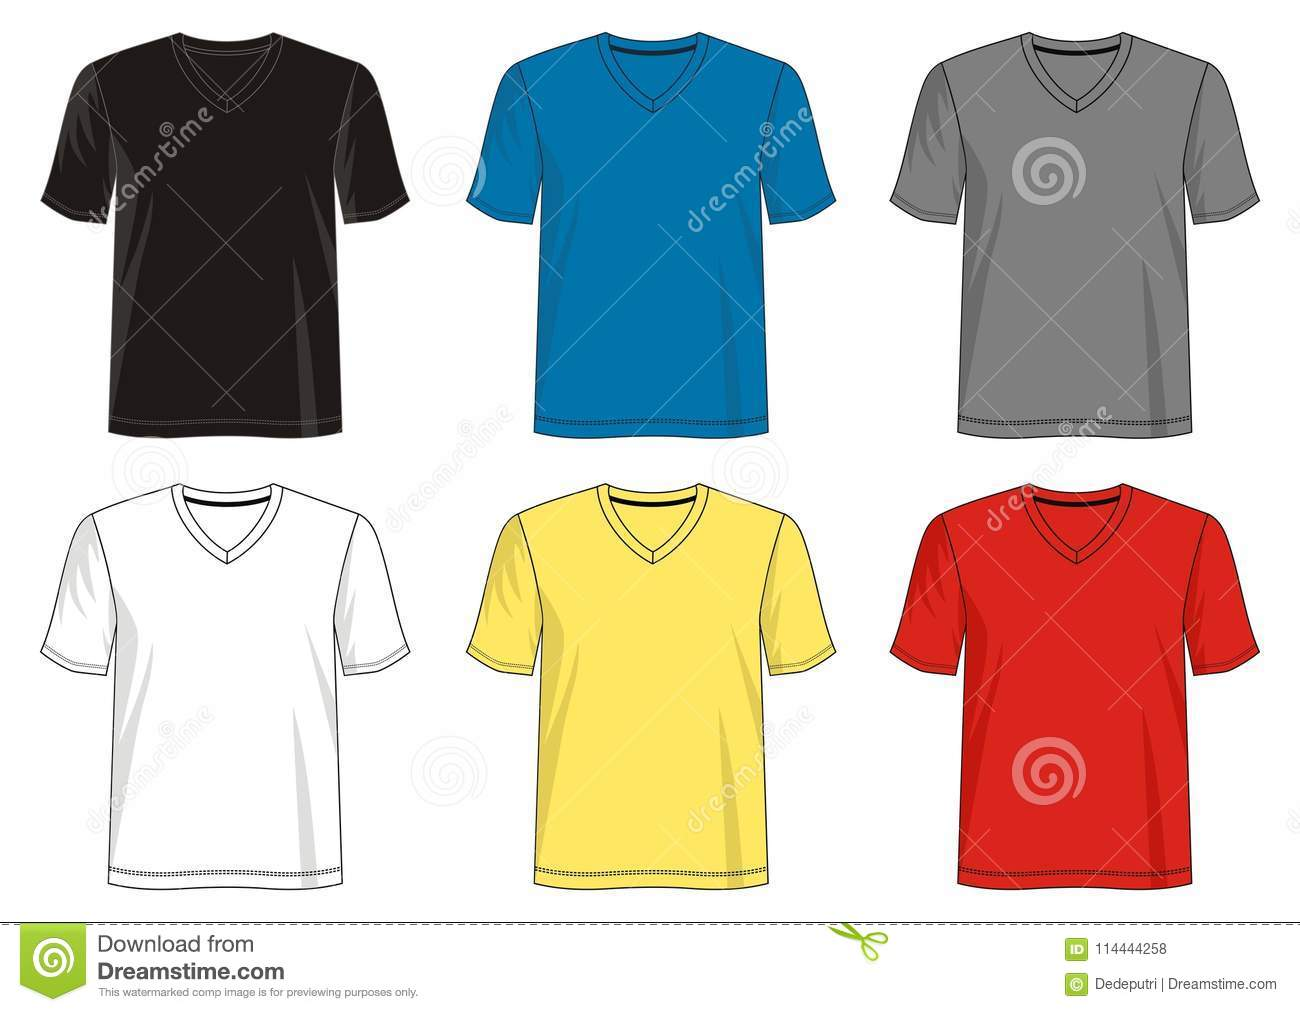 69ac760ff43e Design vector t shirt template collection for men with color black white  blue yellow red gray. More similar stock illustrations